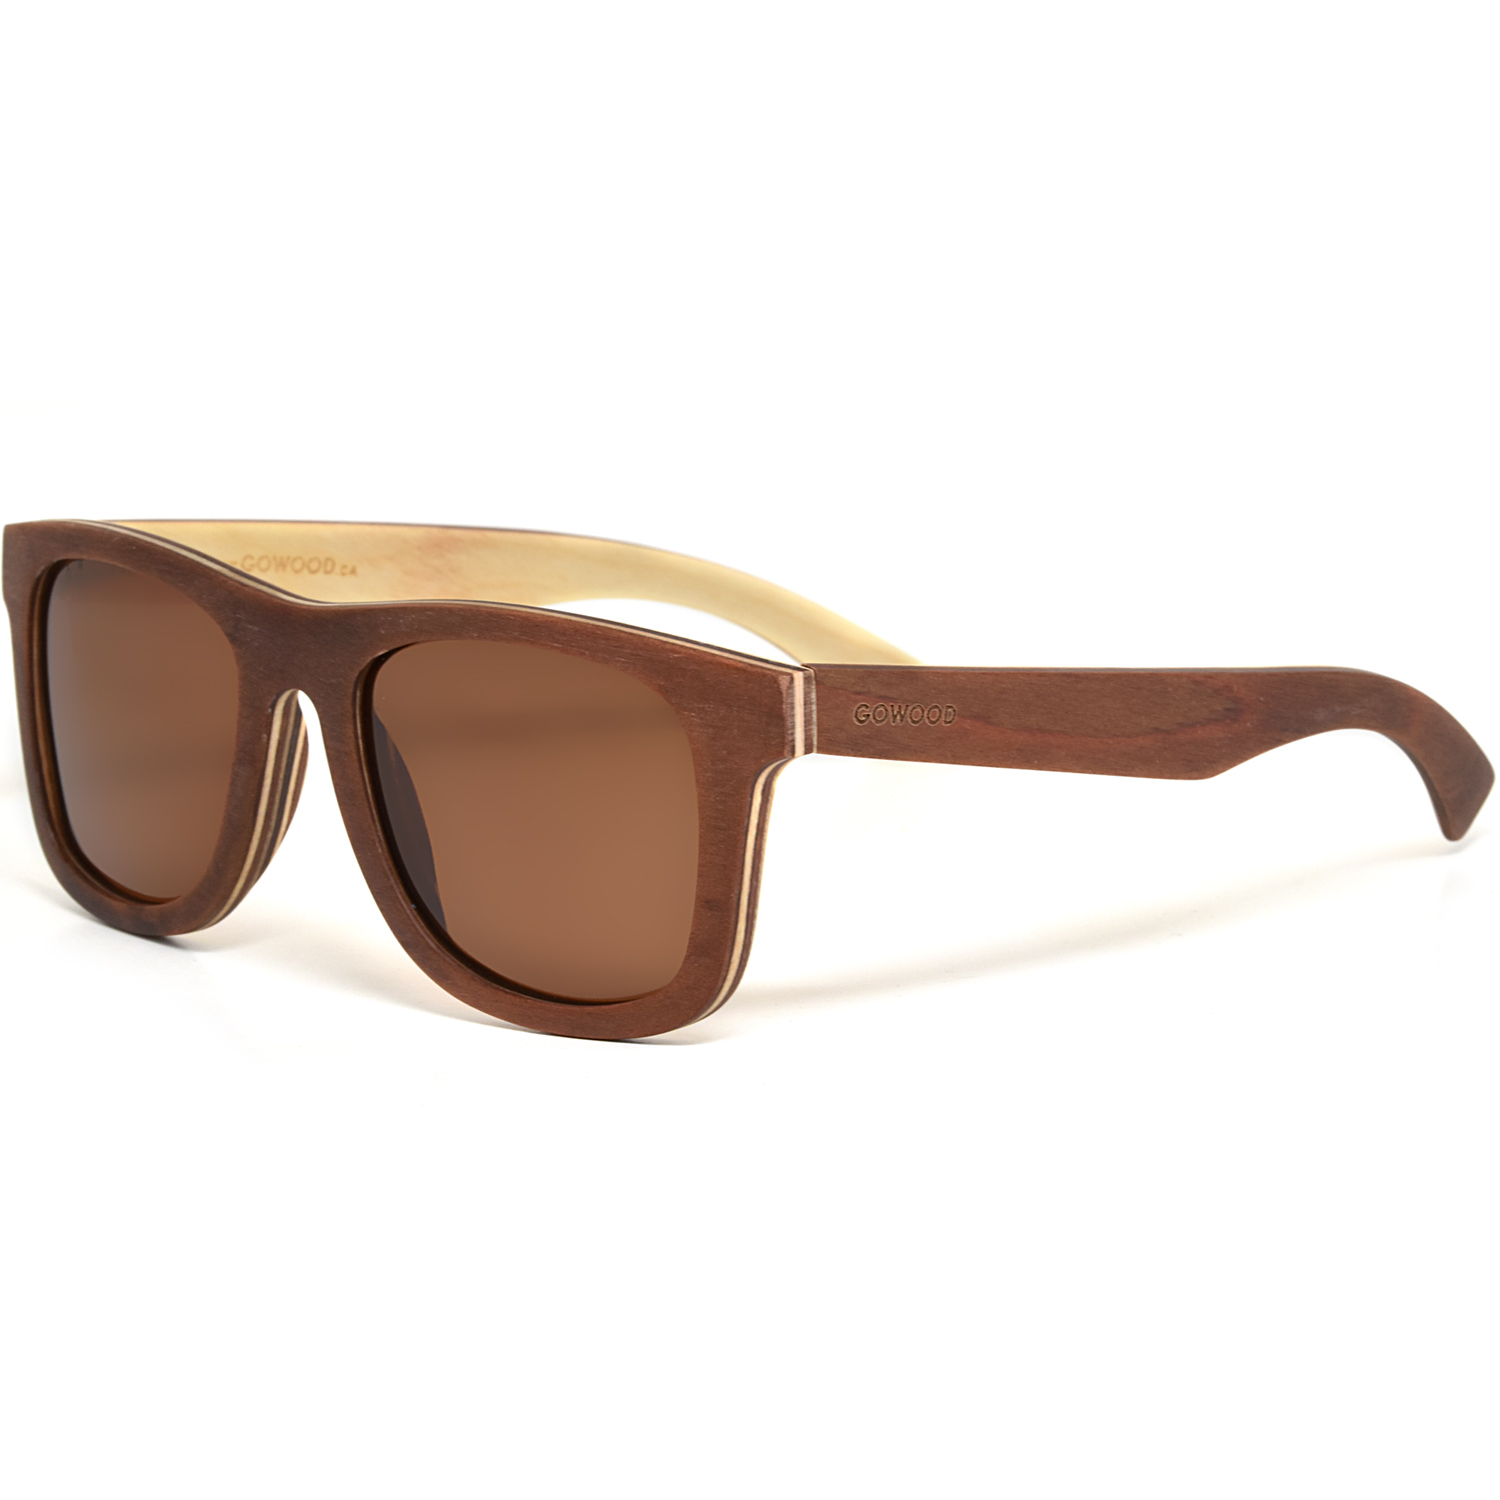 Brown maple wood sunglasses with brown polarized lenses